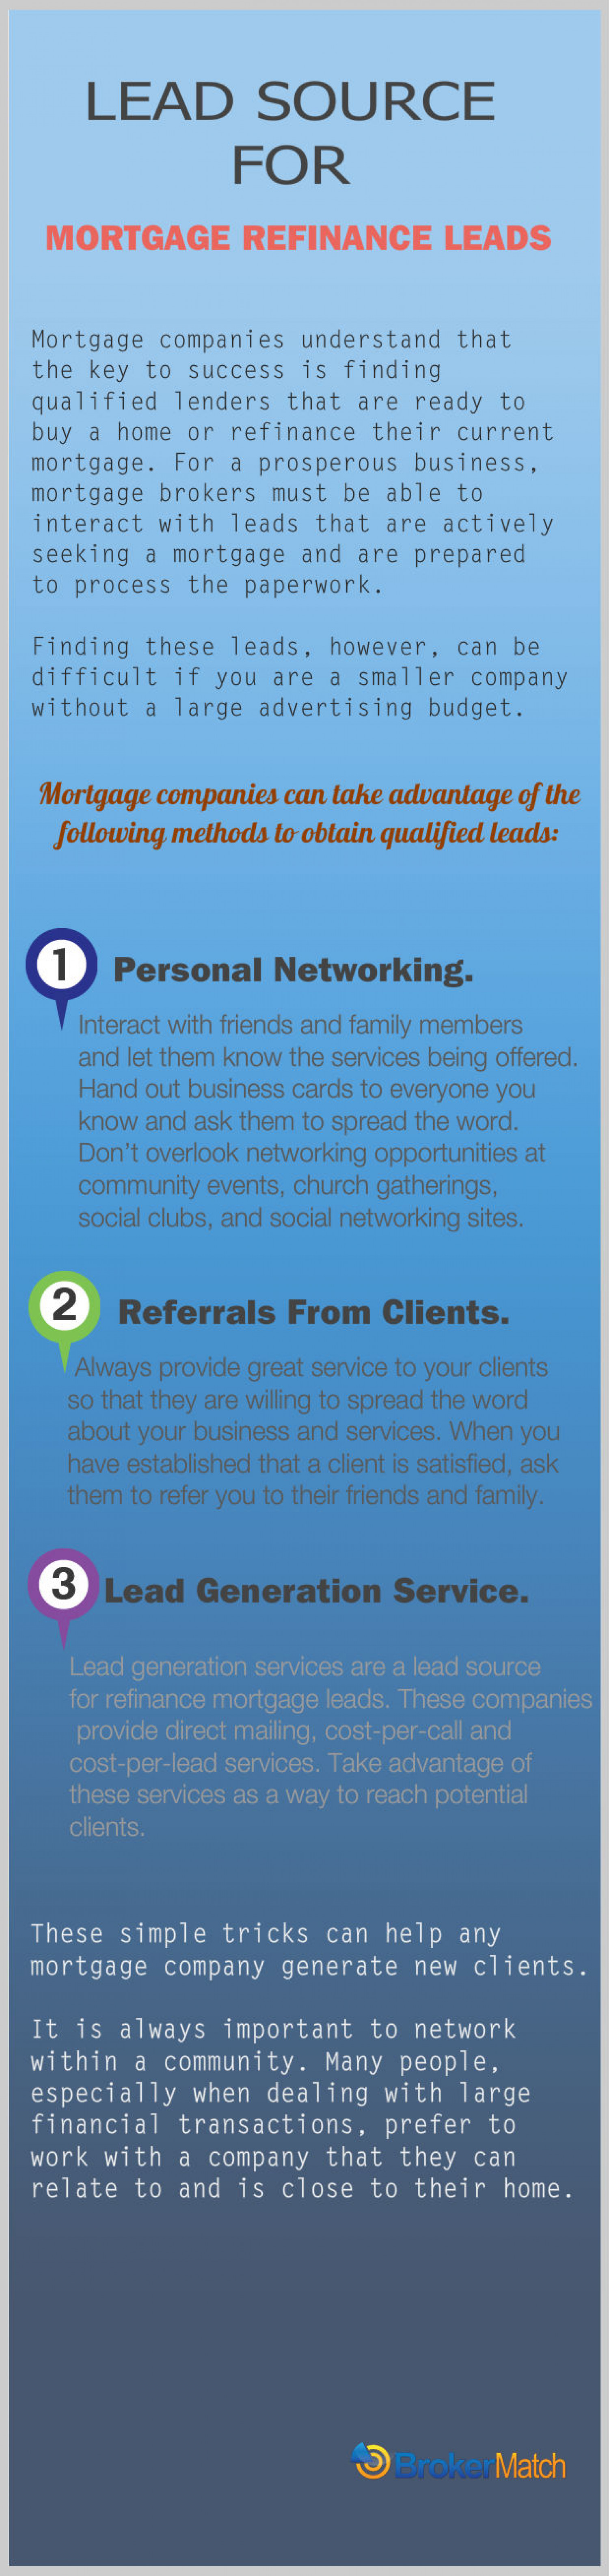 Lead Source for Mortgage Refinance Leads Infographic